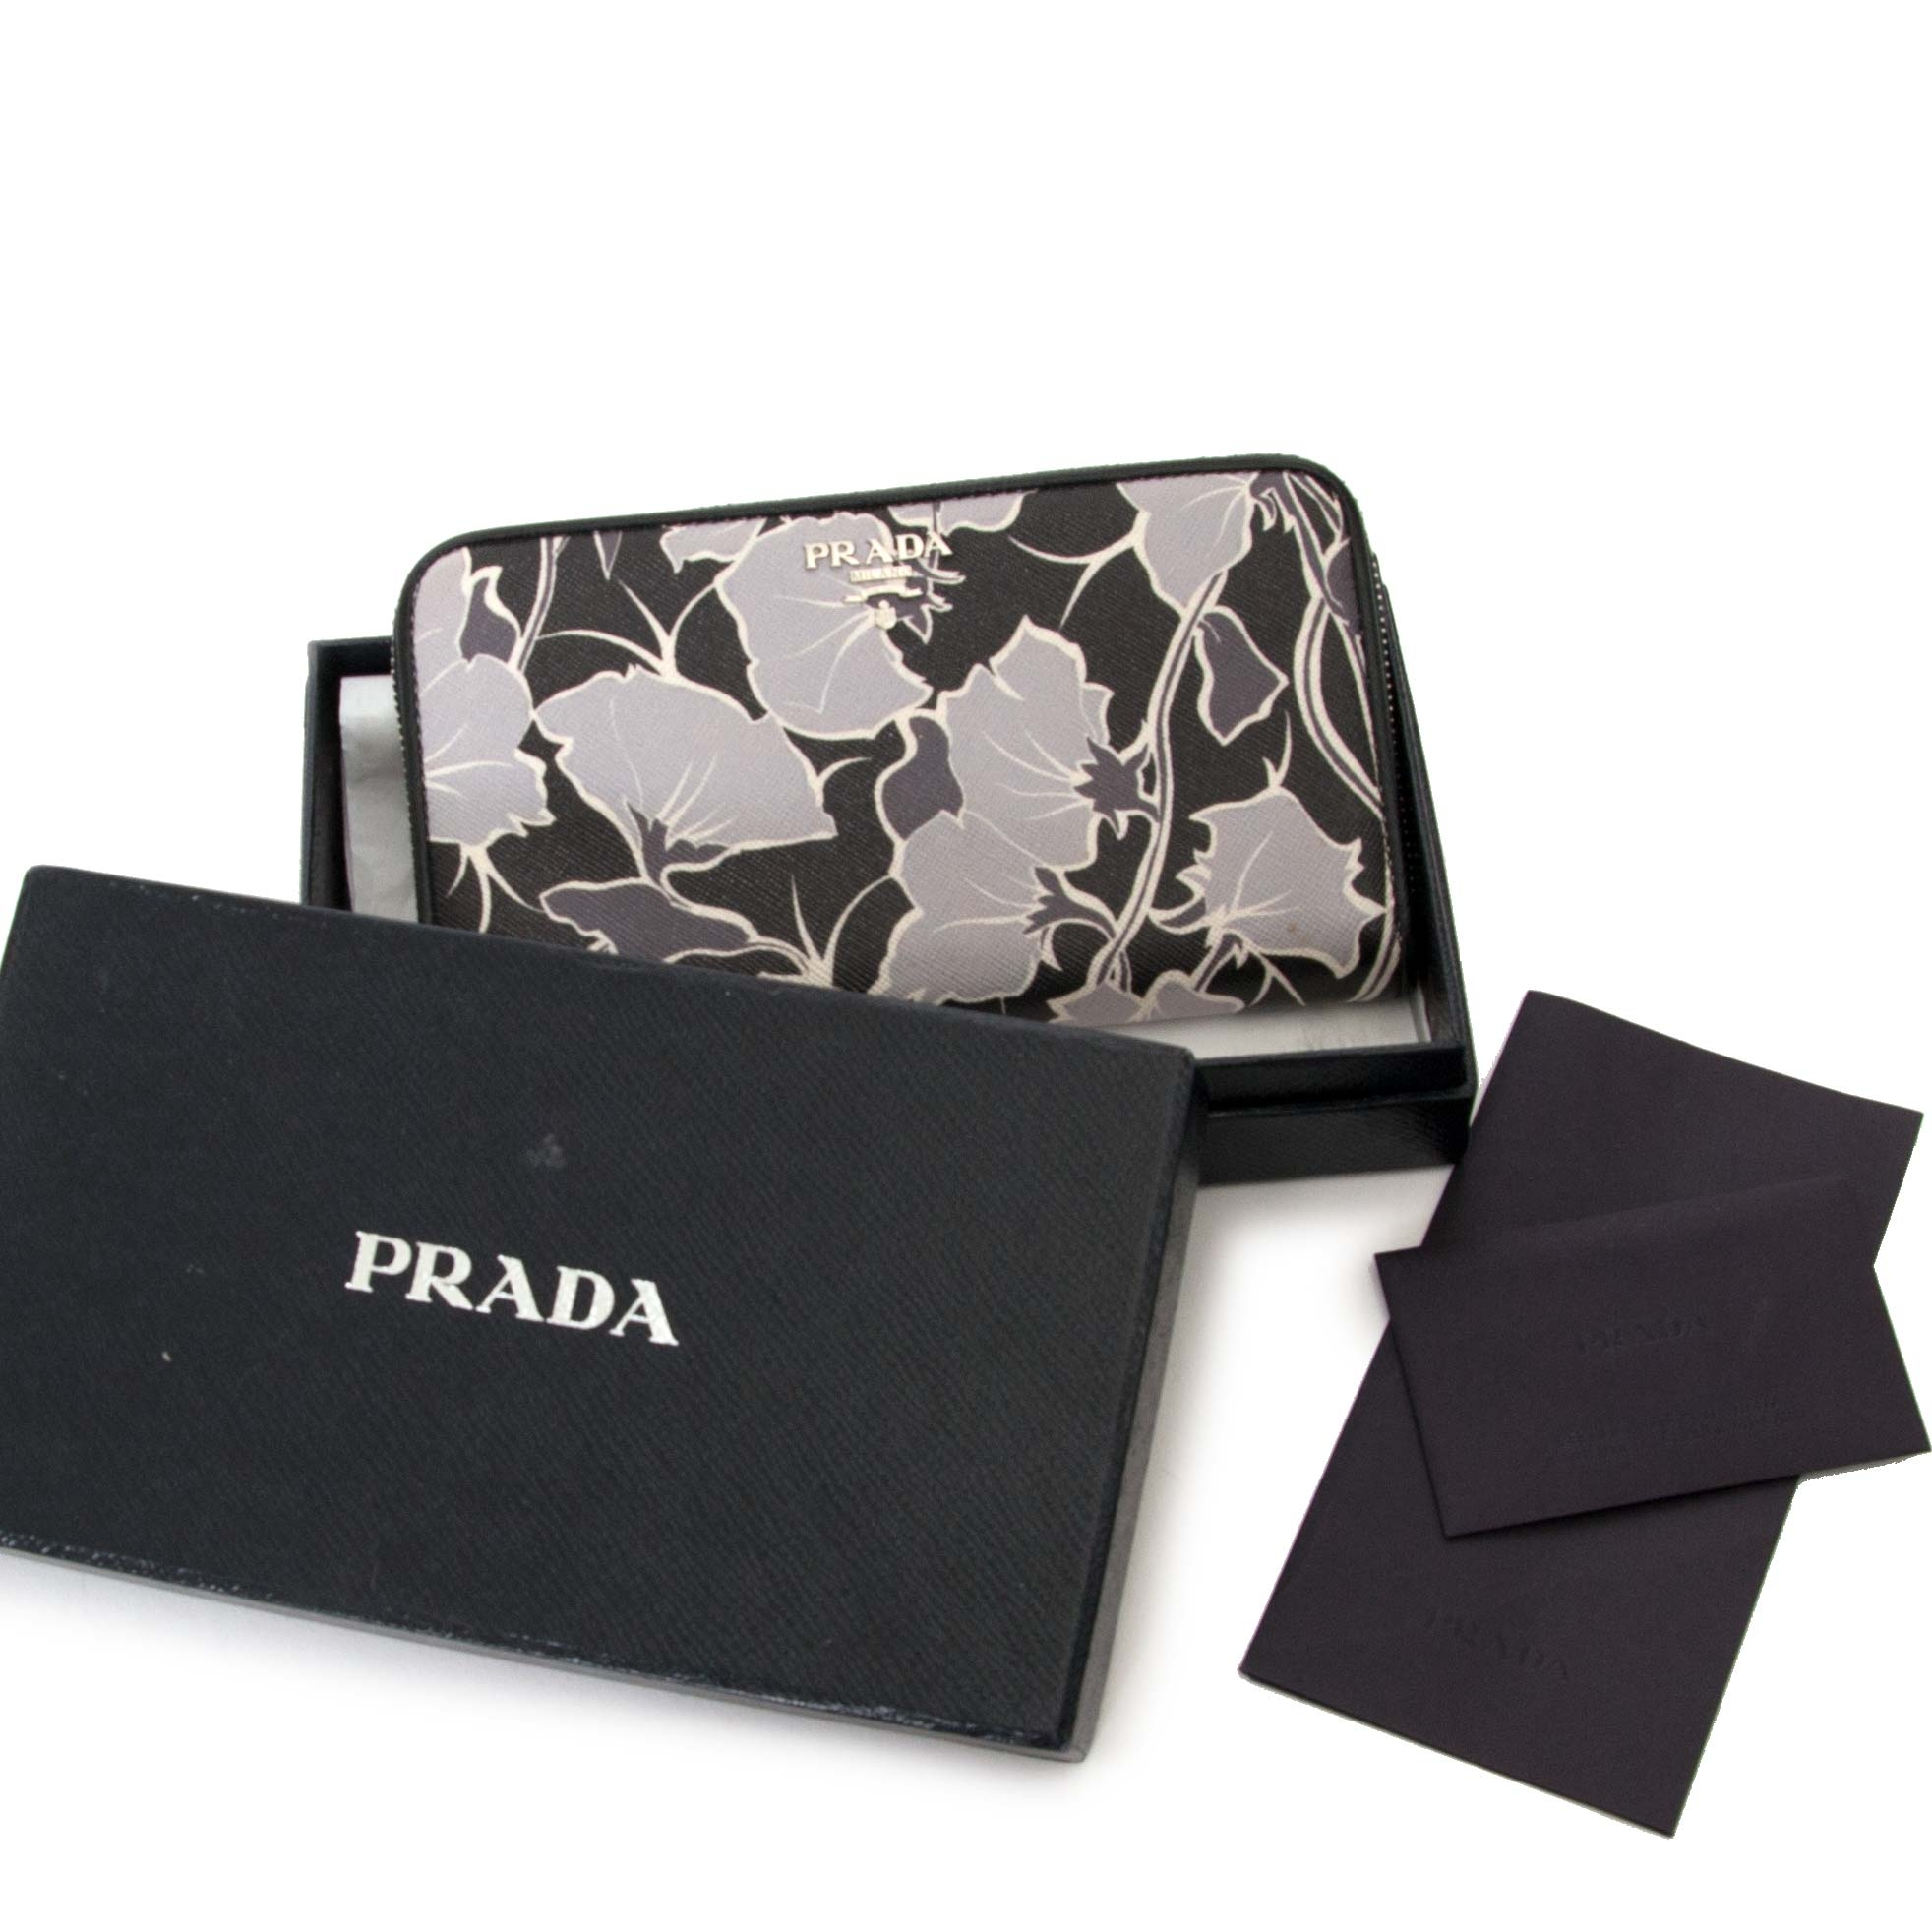 prada limited edition lampo saffiano print wallet now for sale at labellov vintage fashion webshop belgium